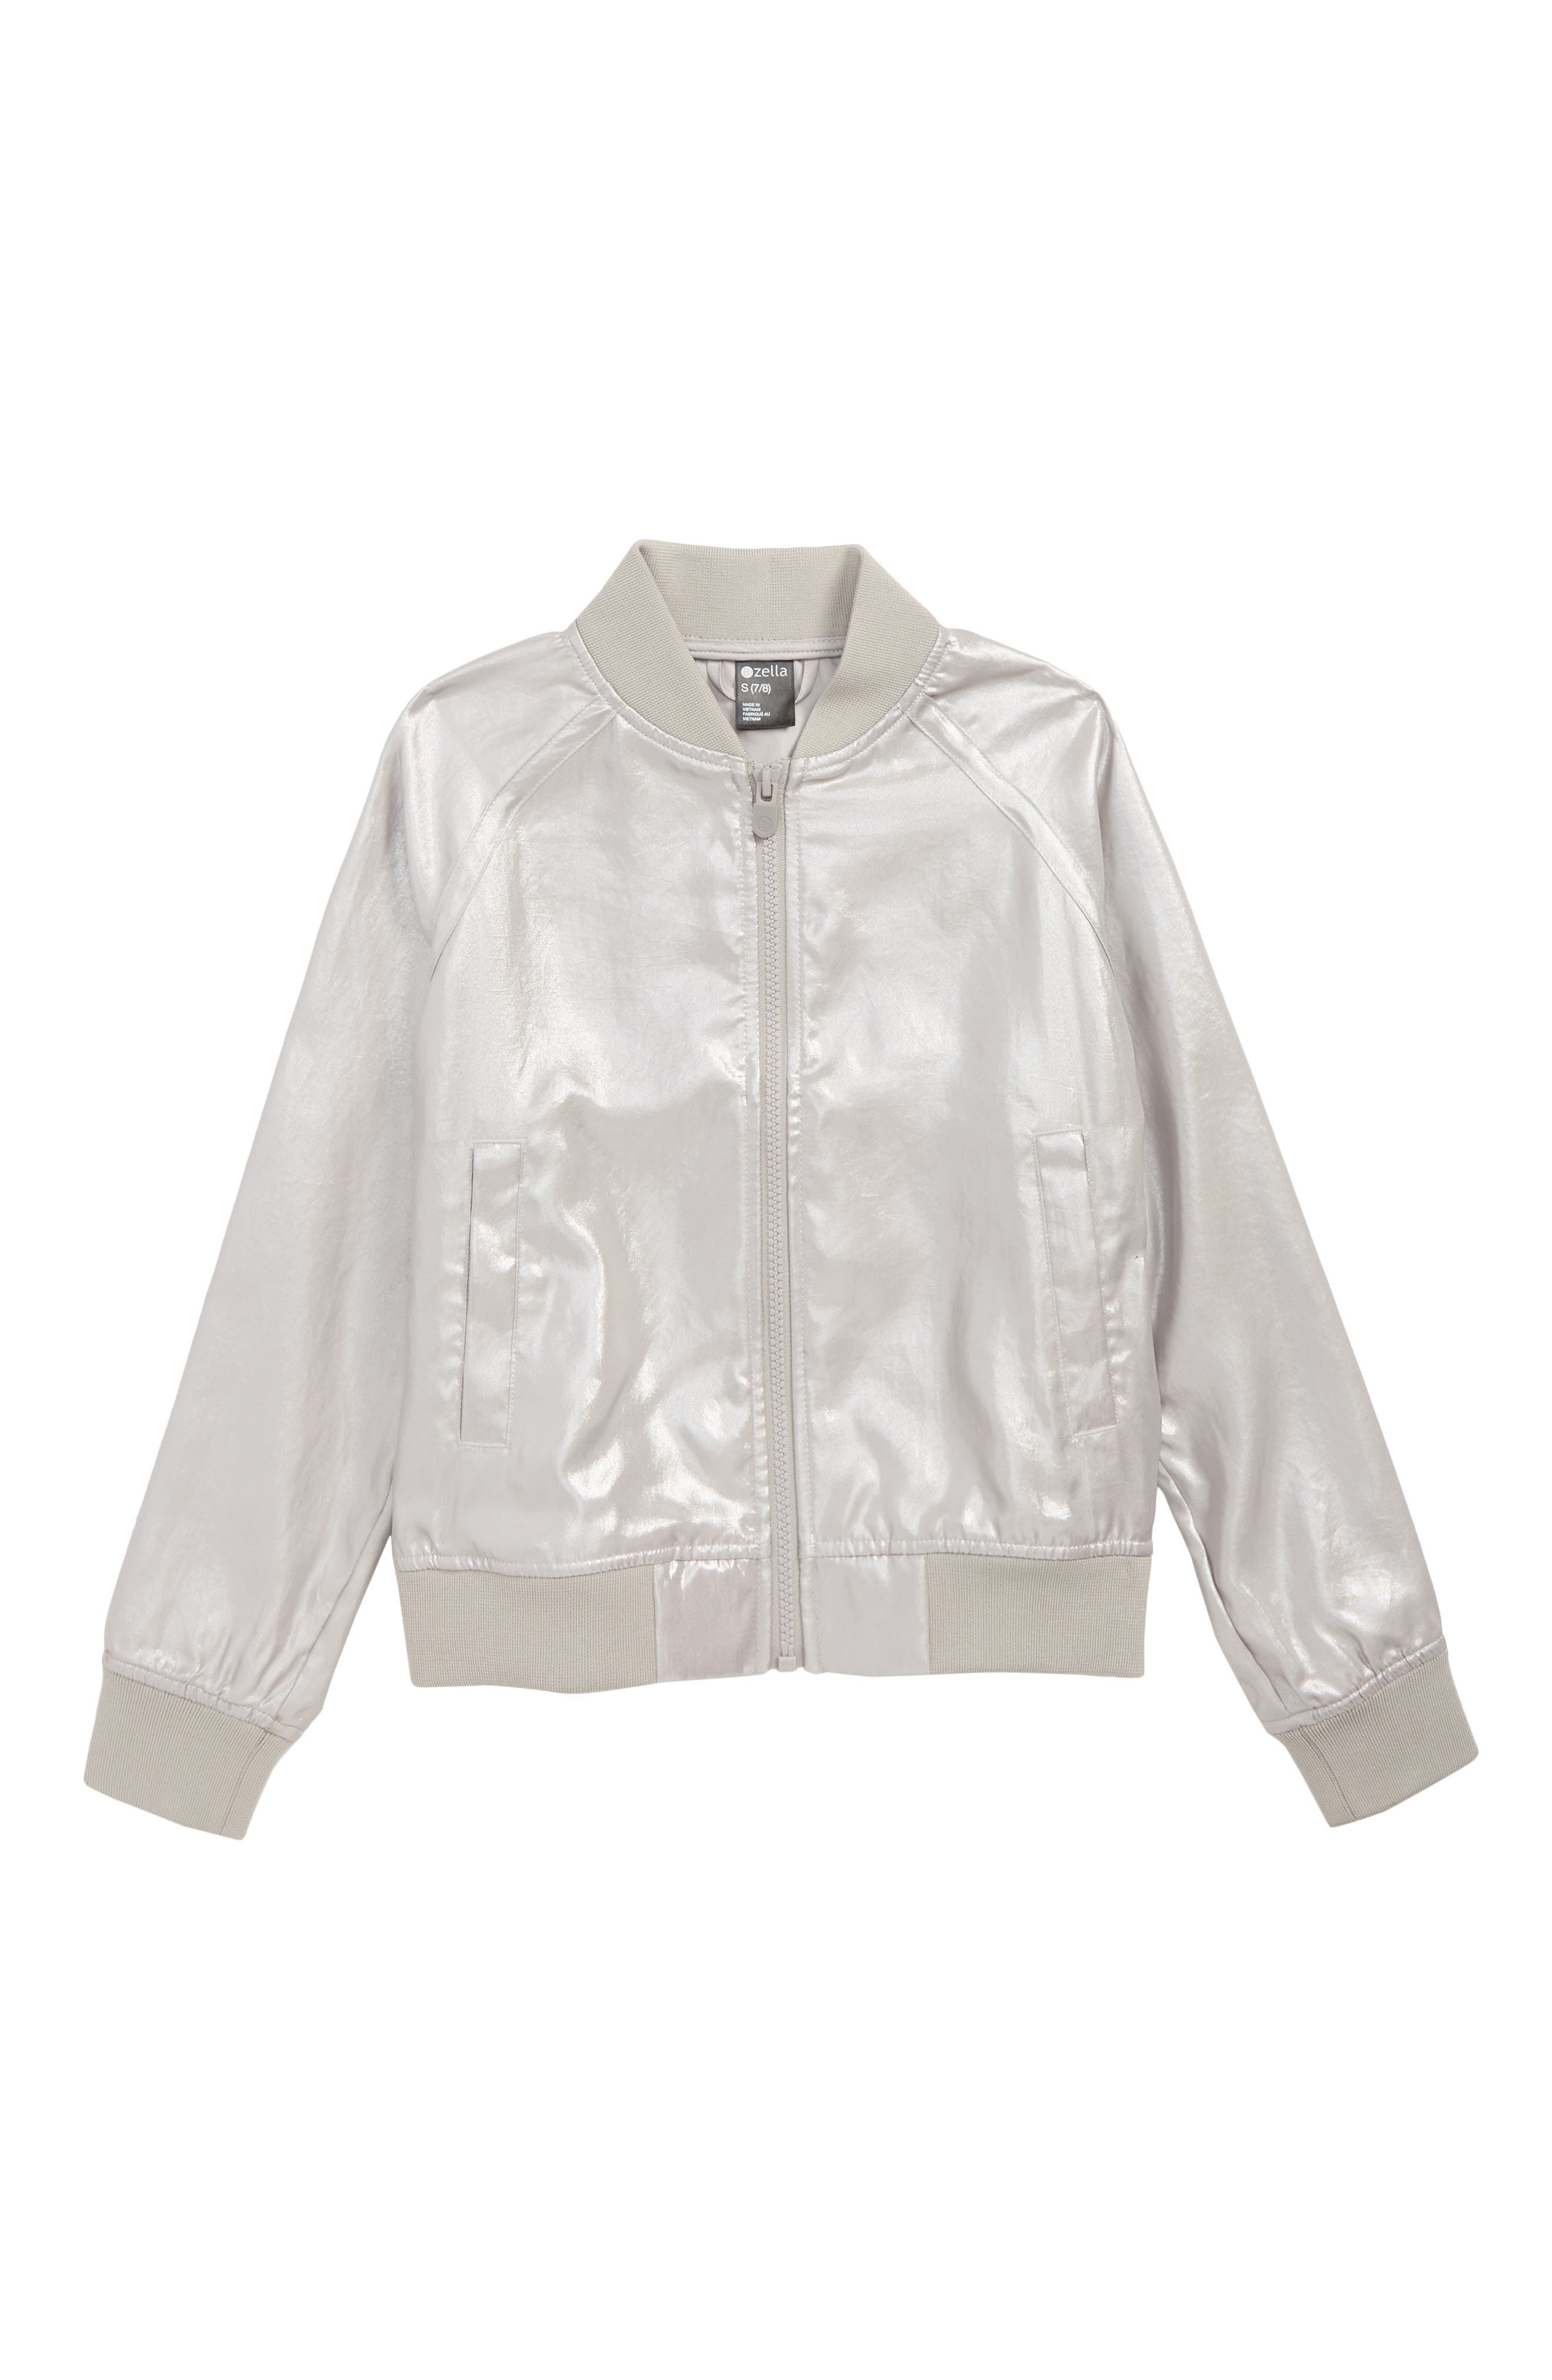 Shine Metallic Bomber Jacket,                             Main thumbnail 1, color,                             SILVER METALLIC